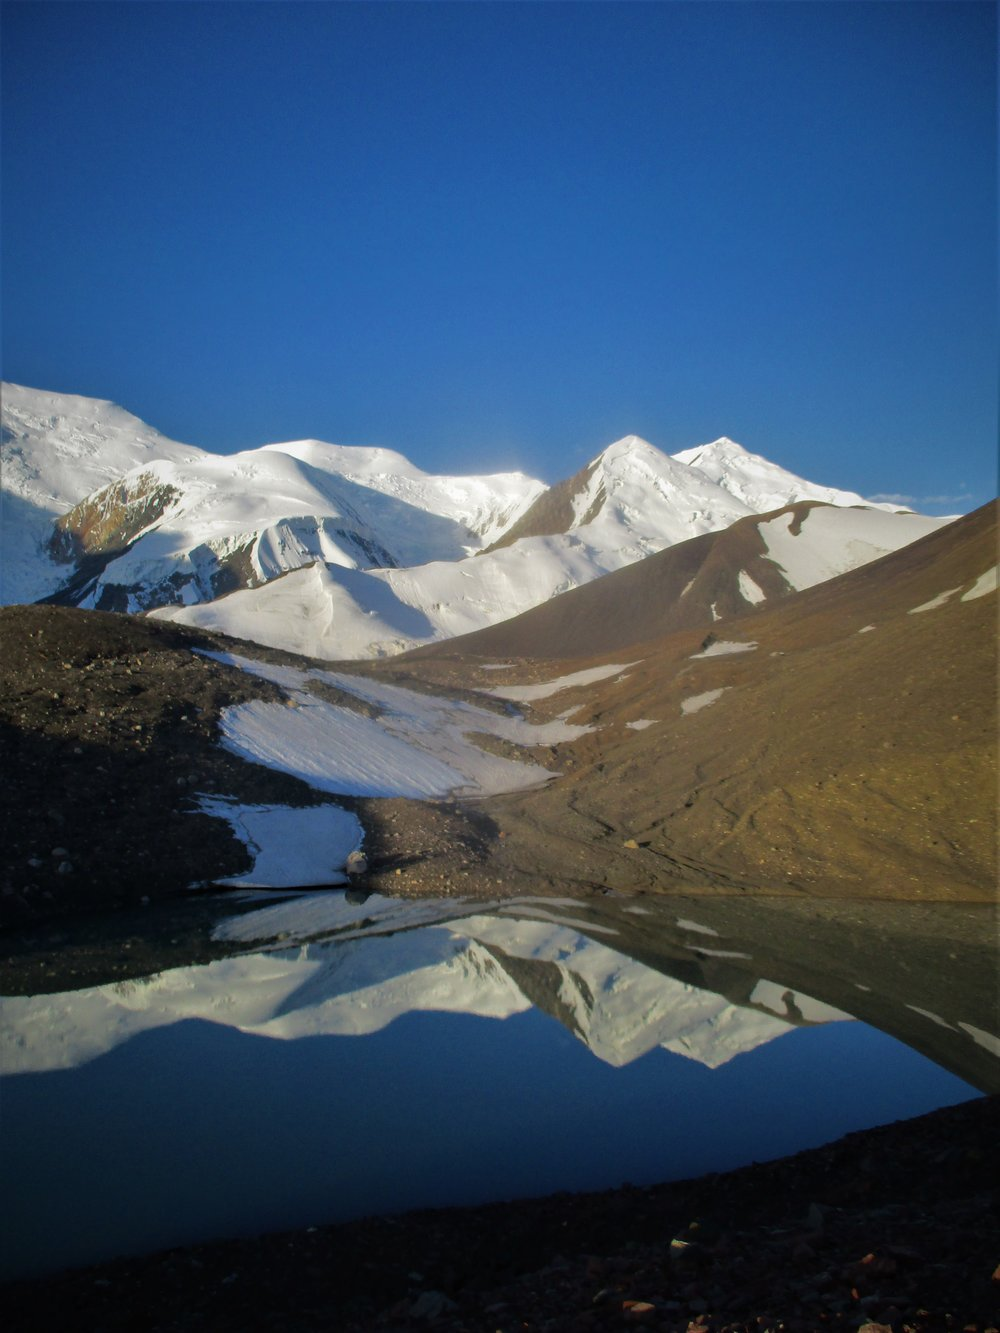 The Pamirs reflected